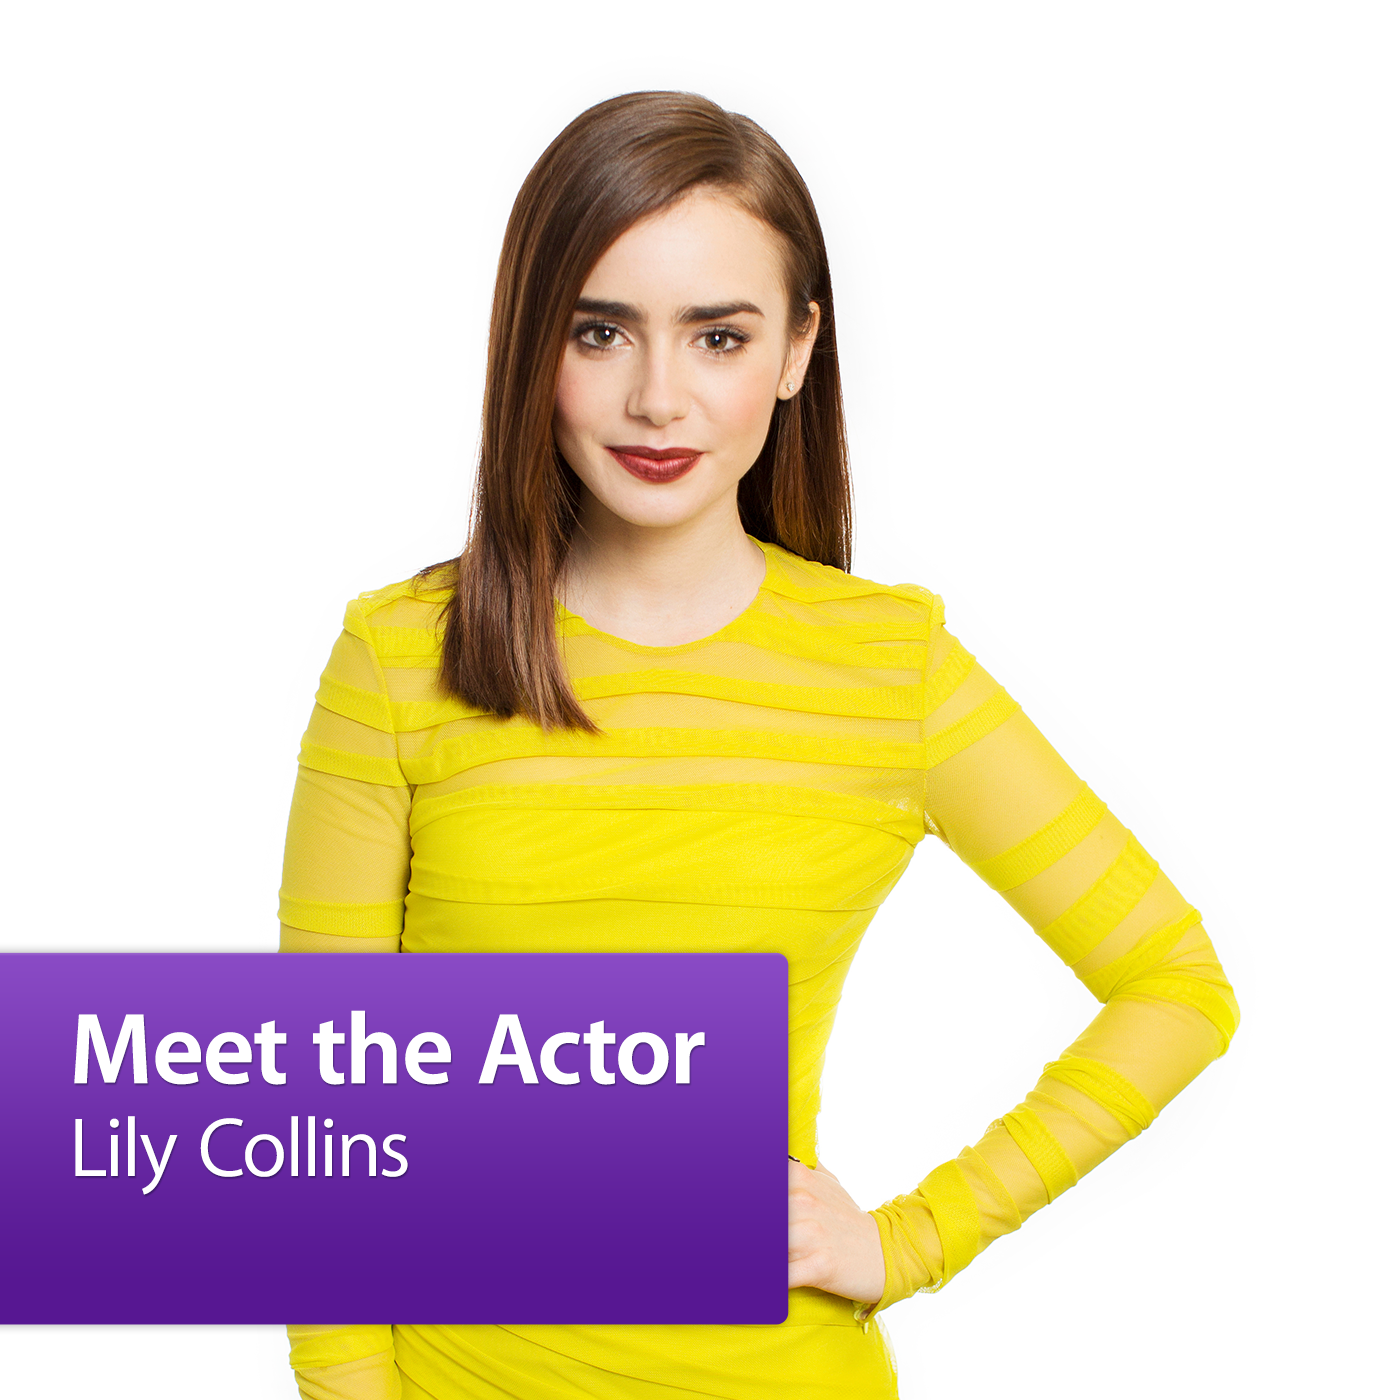 Lily Collins: Meet the Actor